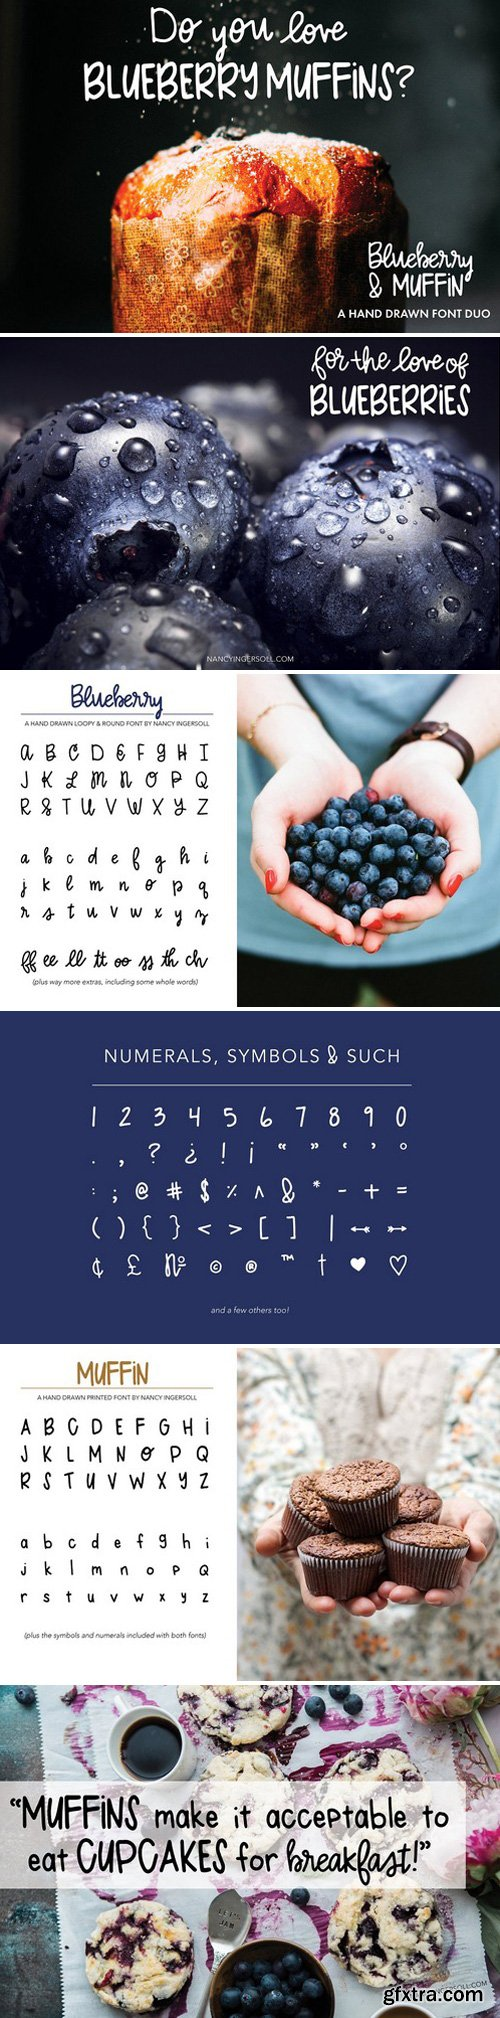 CM - Blueberry Muffin hand drawn font duo 1620290